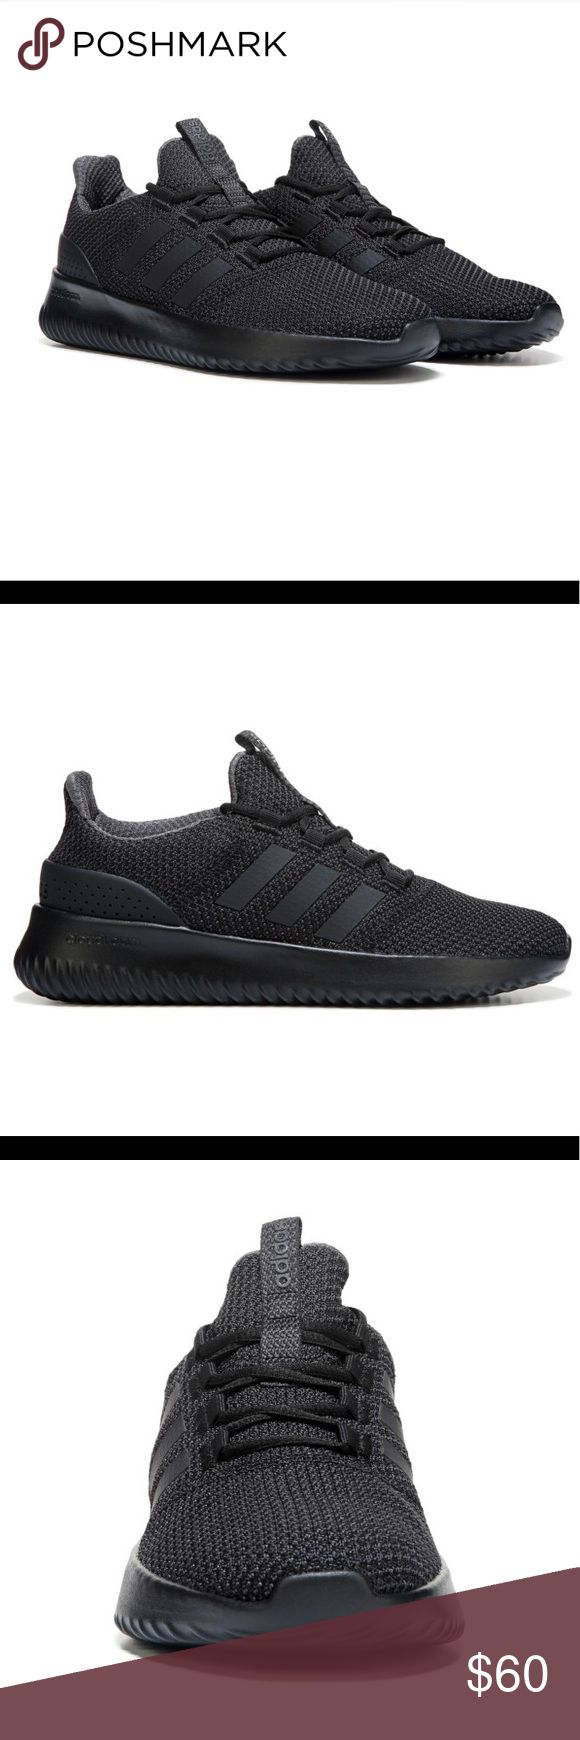 Adidas NEO Cloudfoam Ultimate Men's Sneakers Adidas NEO Cloudfoam Ultimate Men's Sneakers Size 8 - Black/Black Worn once (inside) for an Adidas modeling photoshoot adidas Shoes Sneakers